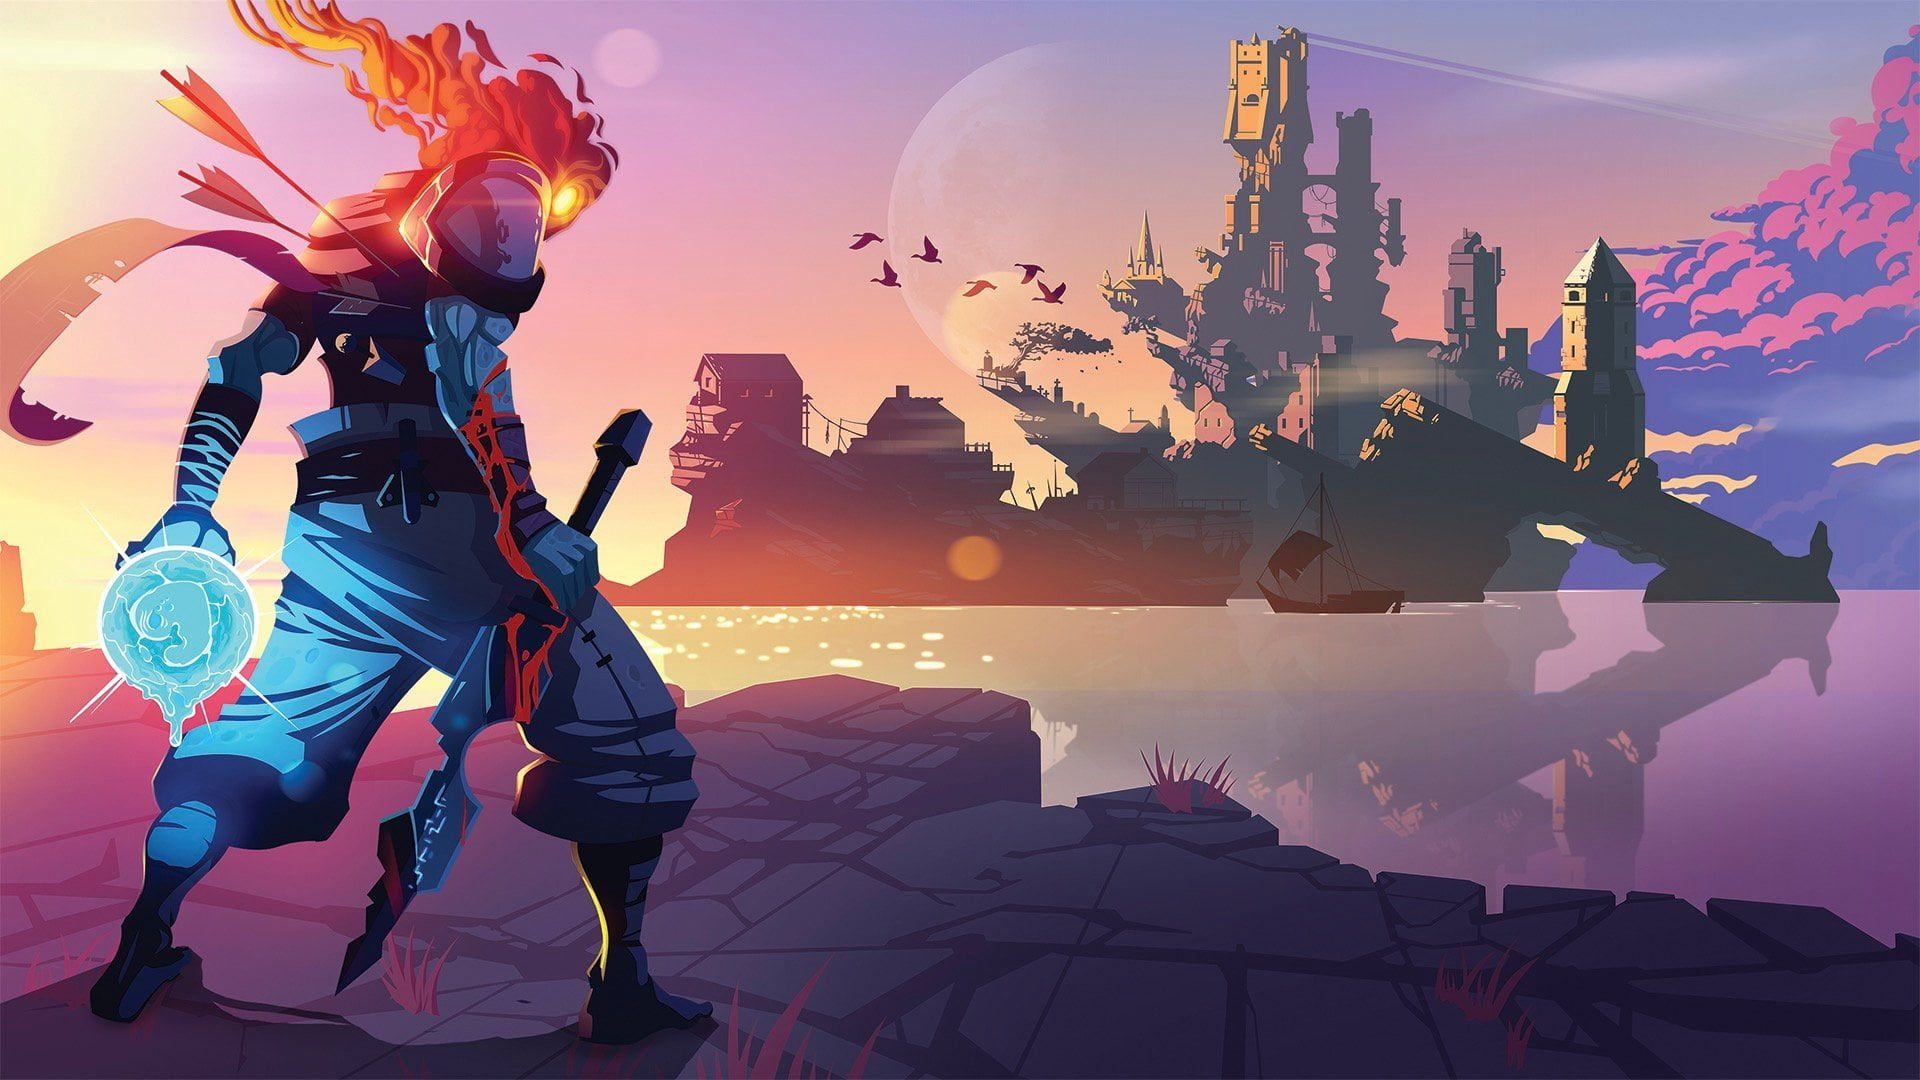 Dead cells motion twin video games video game art 1080p